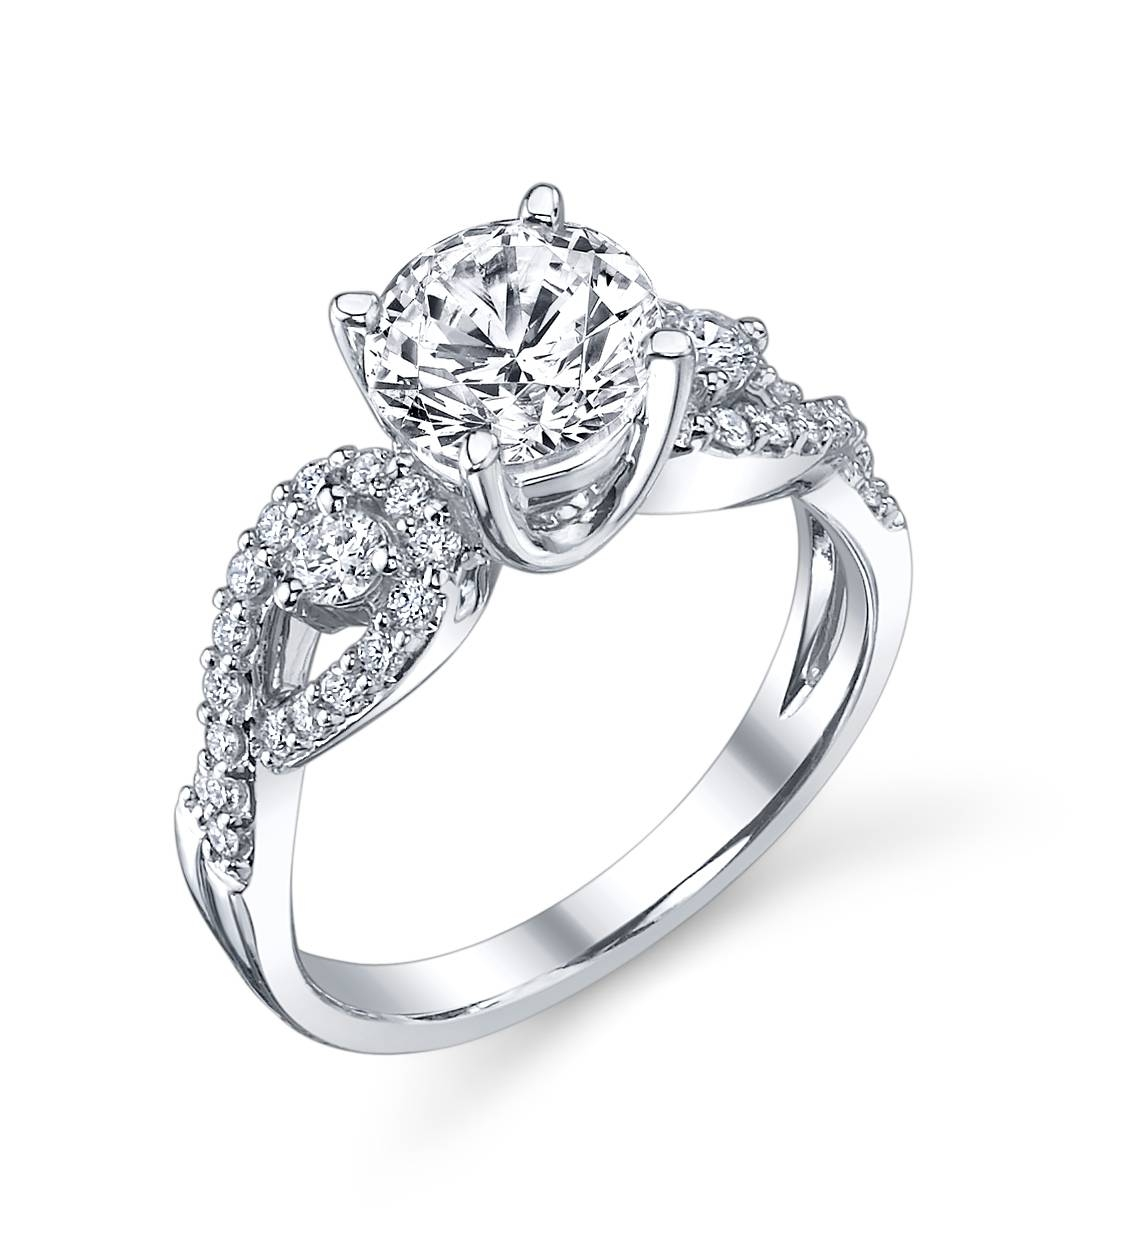 Three Stone Infinity Engagement Ring | Indianapolis Rings With Infinity Wedding Rings (View 15 of 15)